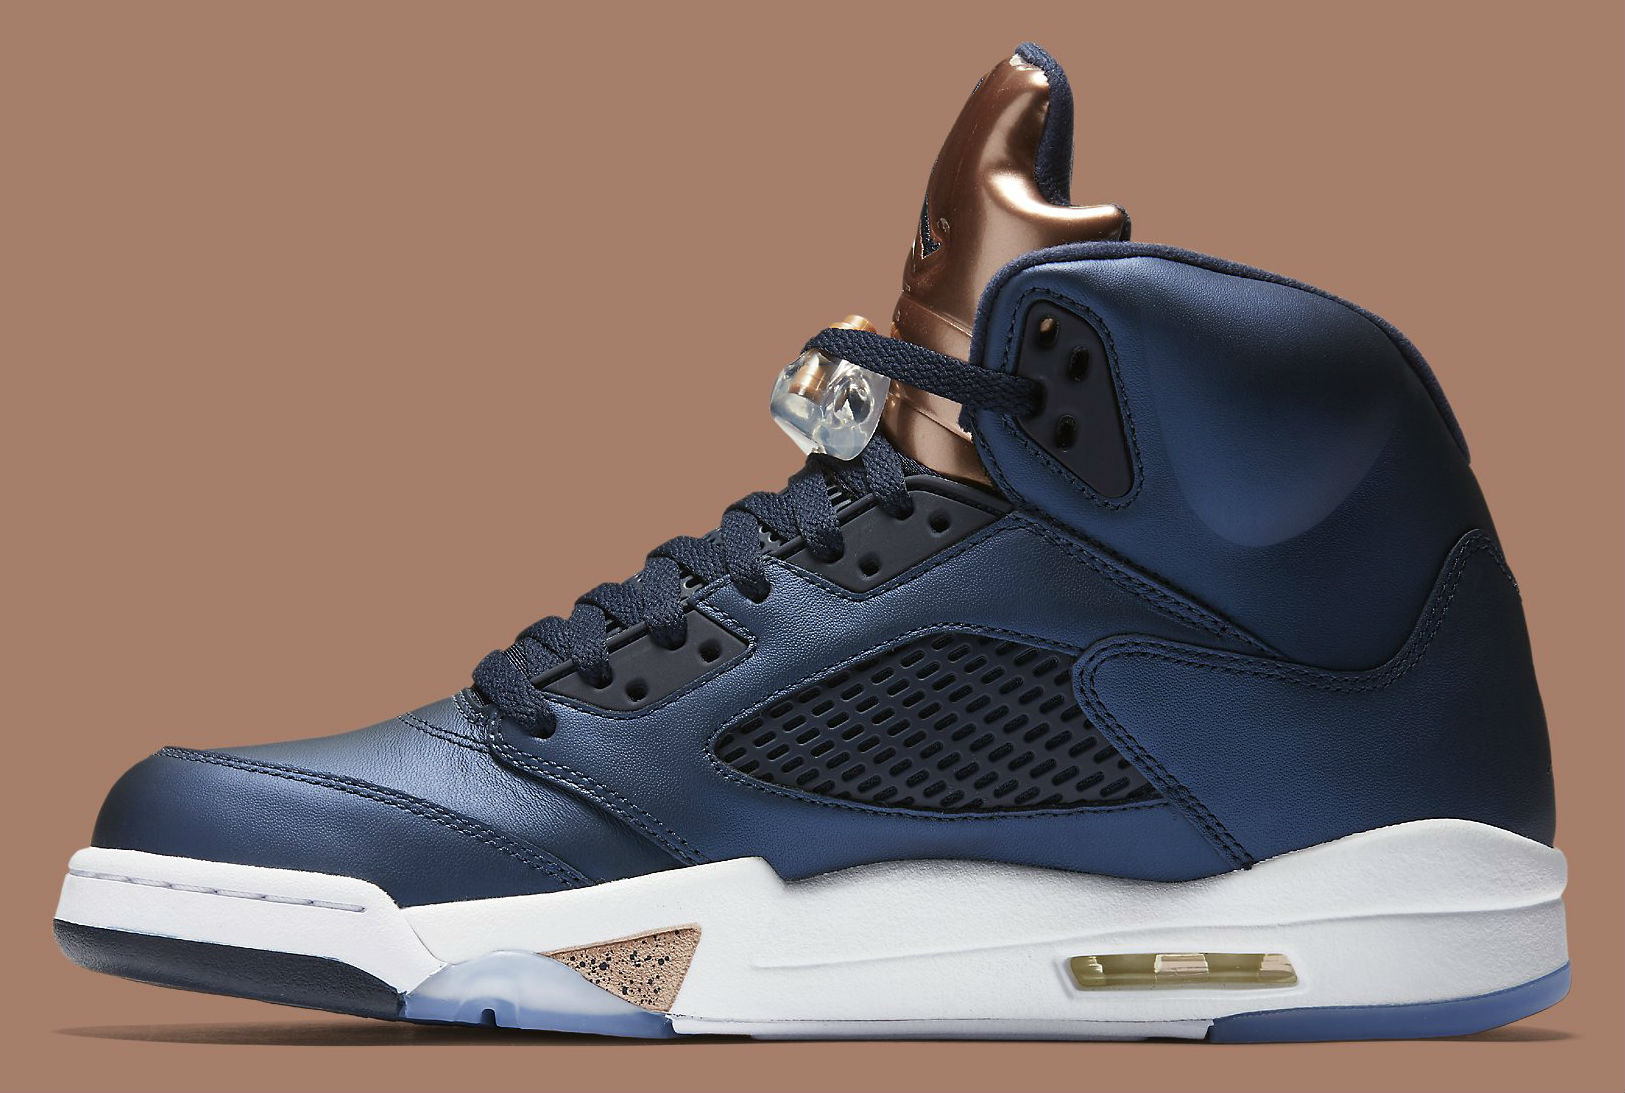 24f0d66c25629 Air Jordan 5 Bronze Medial 136027-416